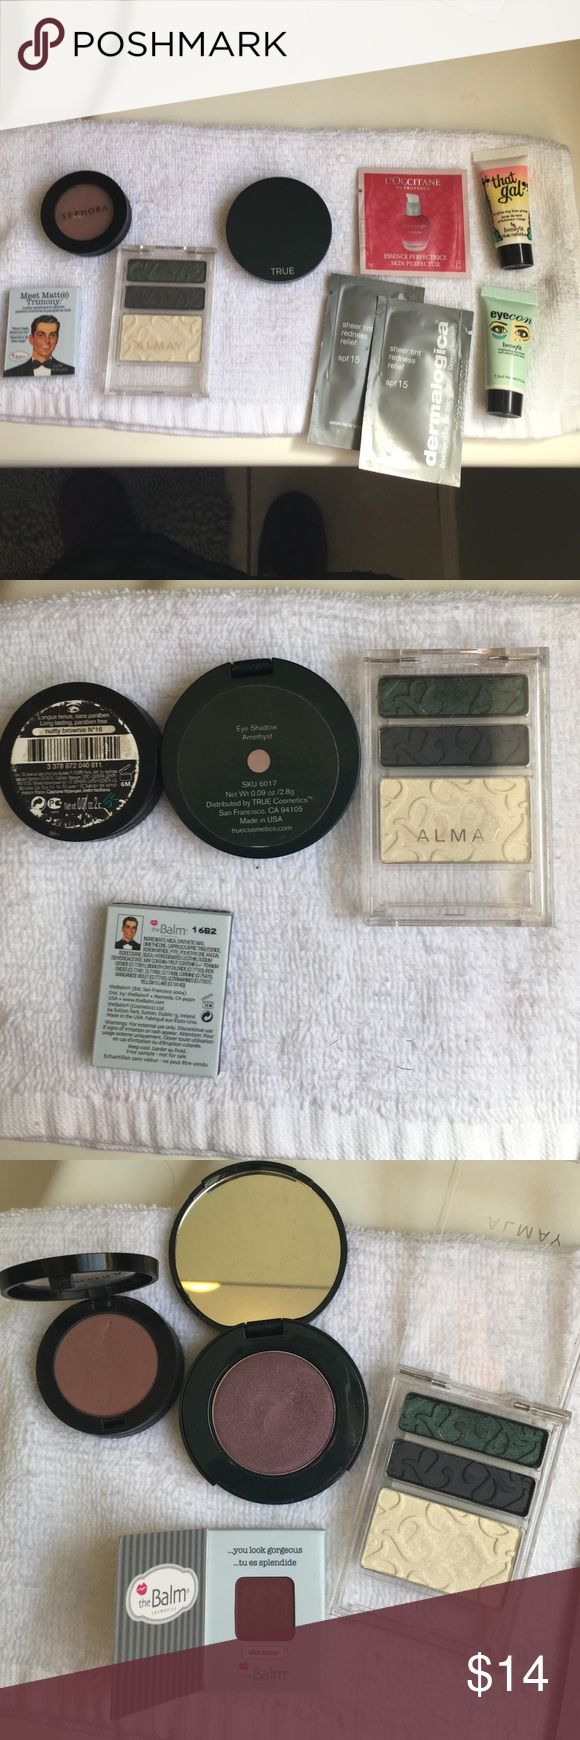 Mixed eyeshadows and benefit samples lot! Decided recently I can't pull of burgundy or Browns! Included in this lot is an Almay 033 trip for hazel eyes, lightly swatched (threw out applicator since they never work well), Sephora  eyeshadow in nutty brownie, used several times, unused eyeshadow sample from the Balm in Matt Kumar, large eyeshadow in amethyst from True Cosmetics, swatched several times. The samples are unused from l'occitane and dermalogica, and the benefit minis were probably…